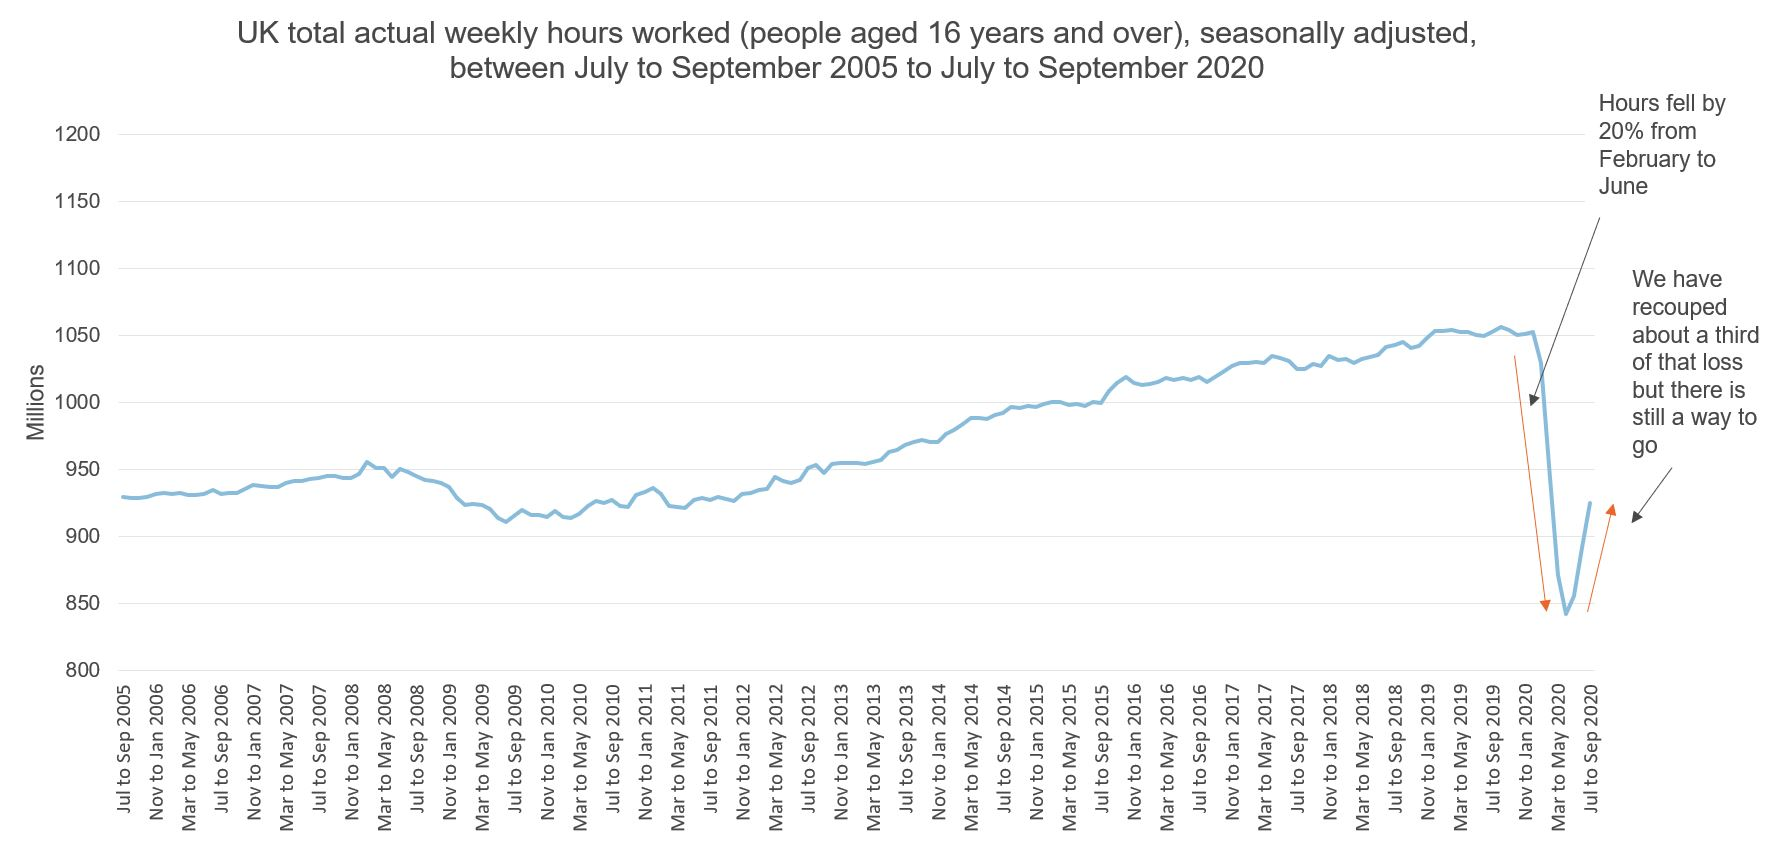 Figure showing UK weekly hours worked